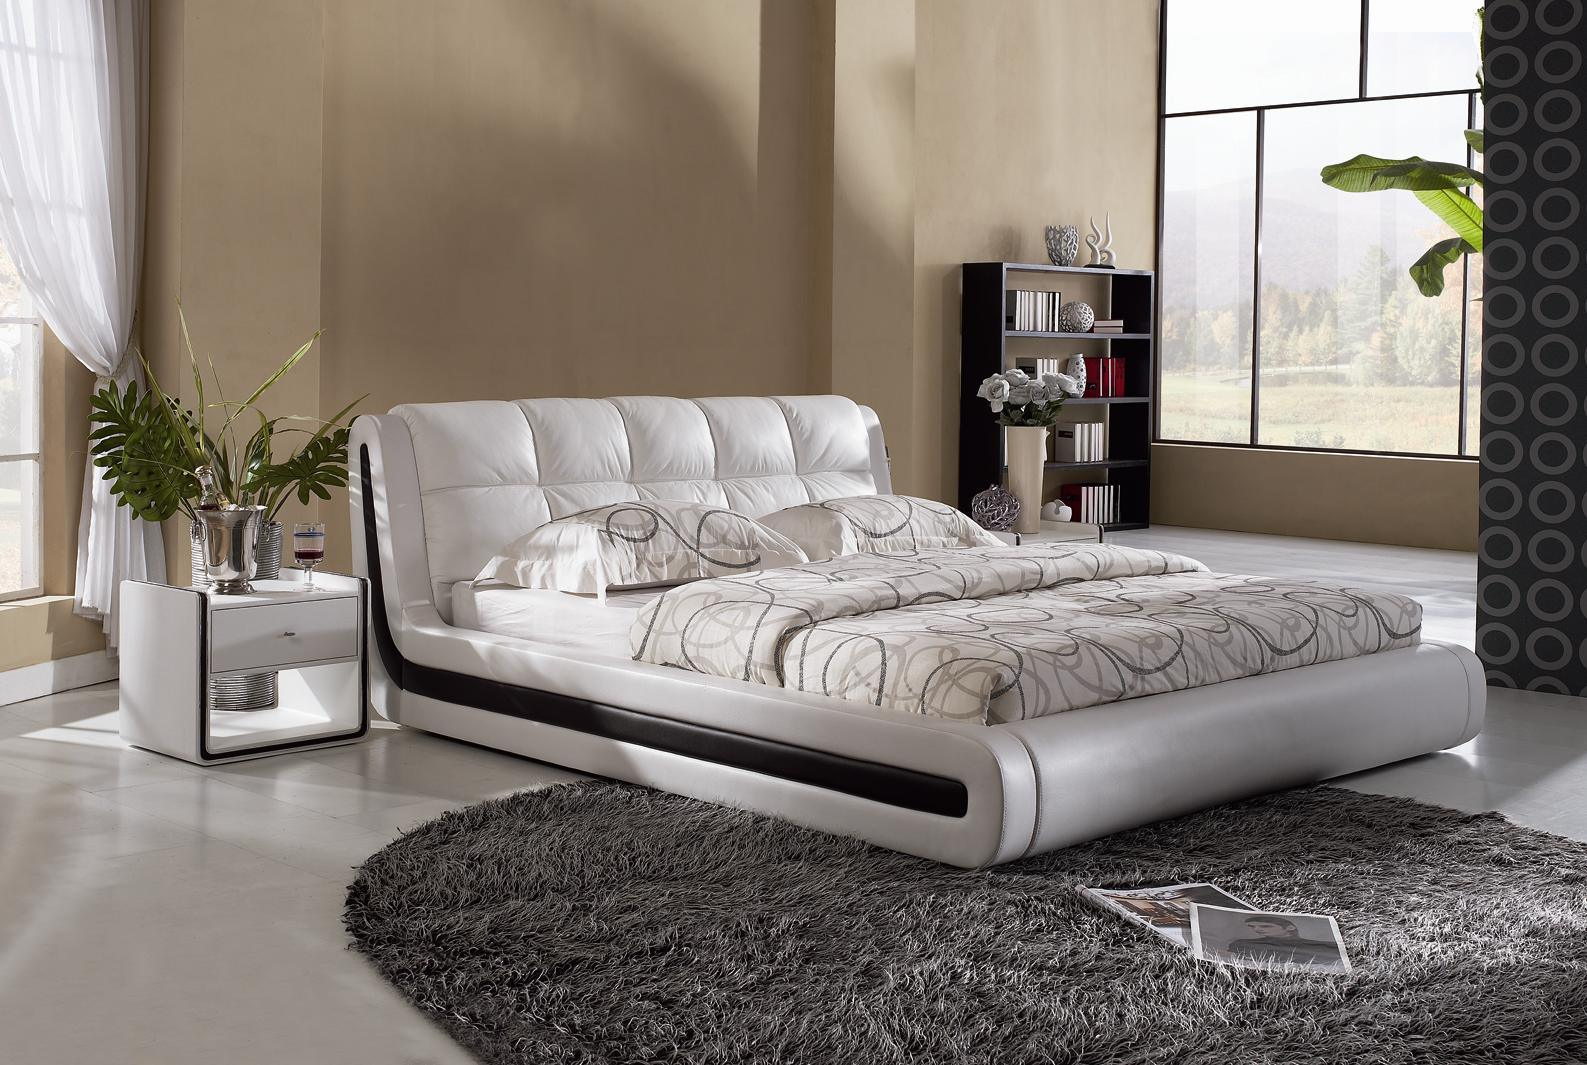 modern beds design pictures simple home decoration ForBed Dizain Image